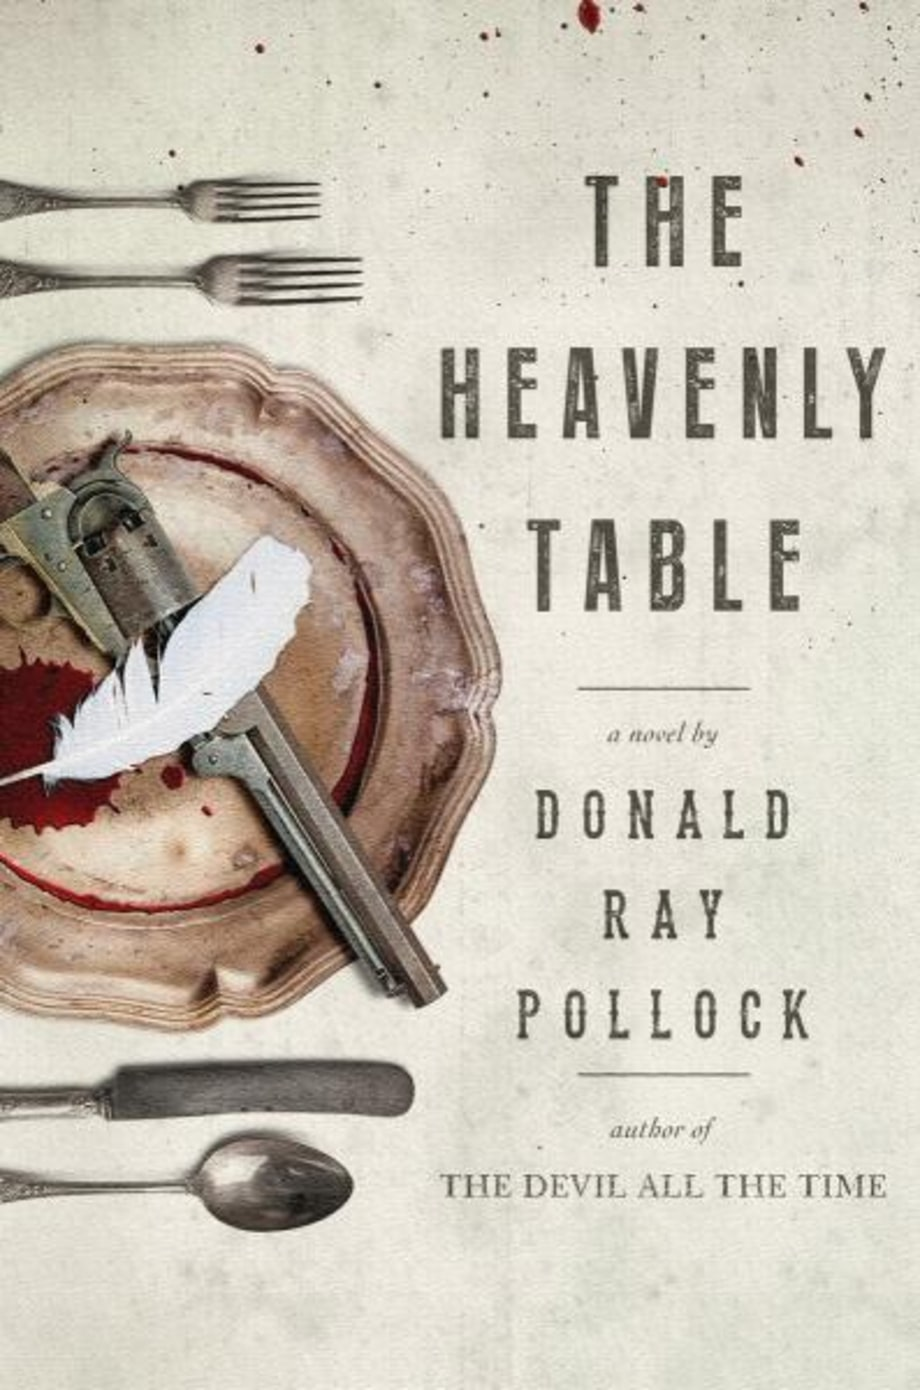 The Heavenly Table, Donald Ray Pollock